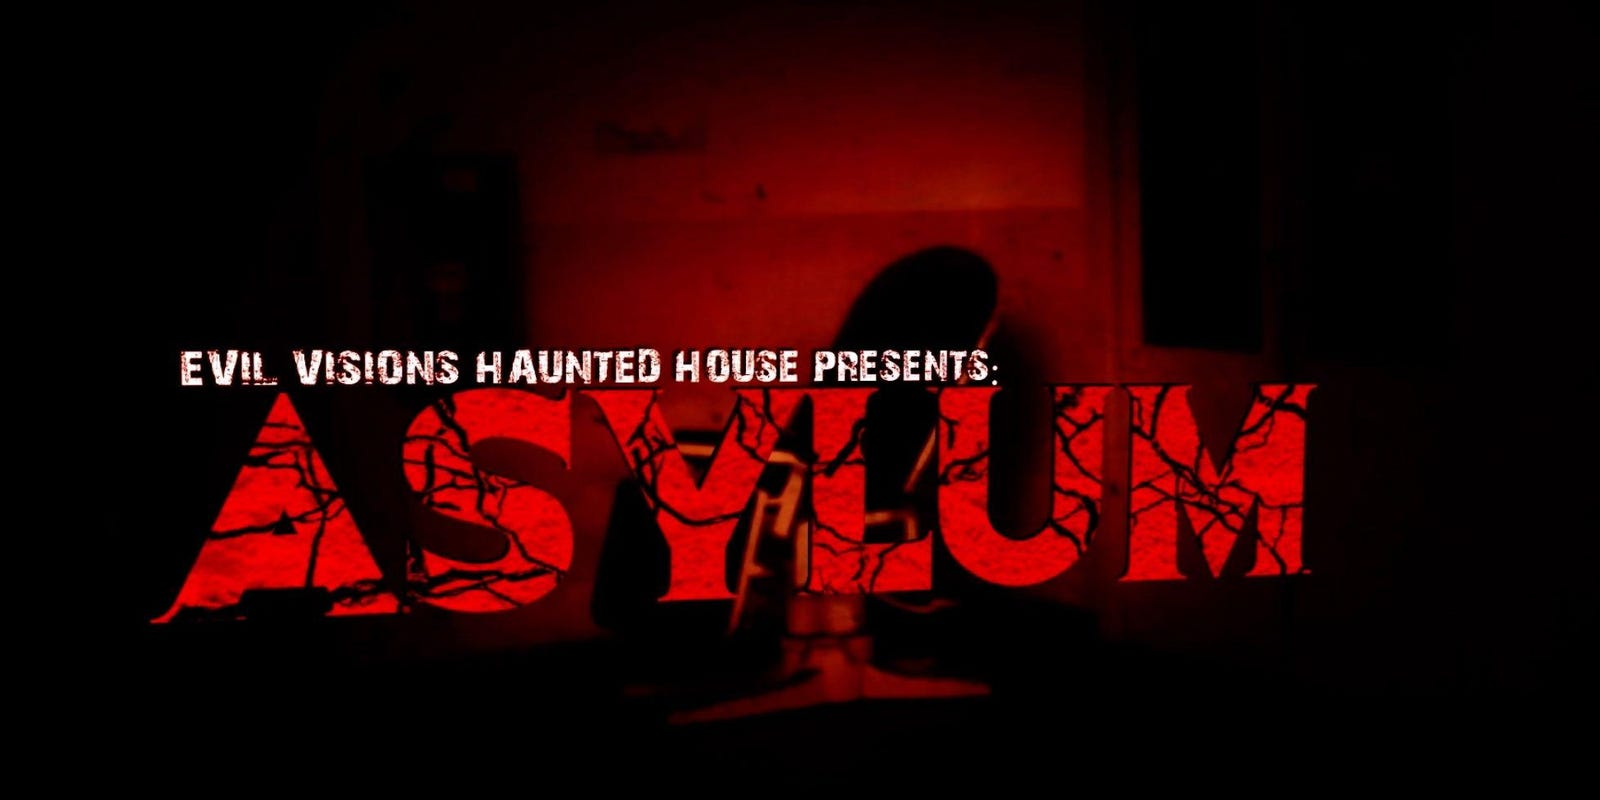 Evil Visions Haunted House is scary stuff